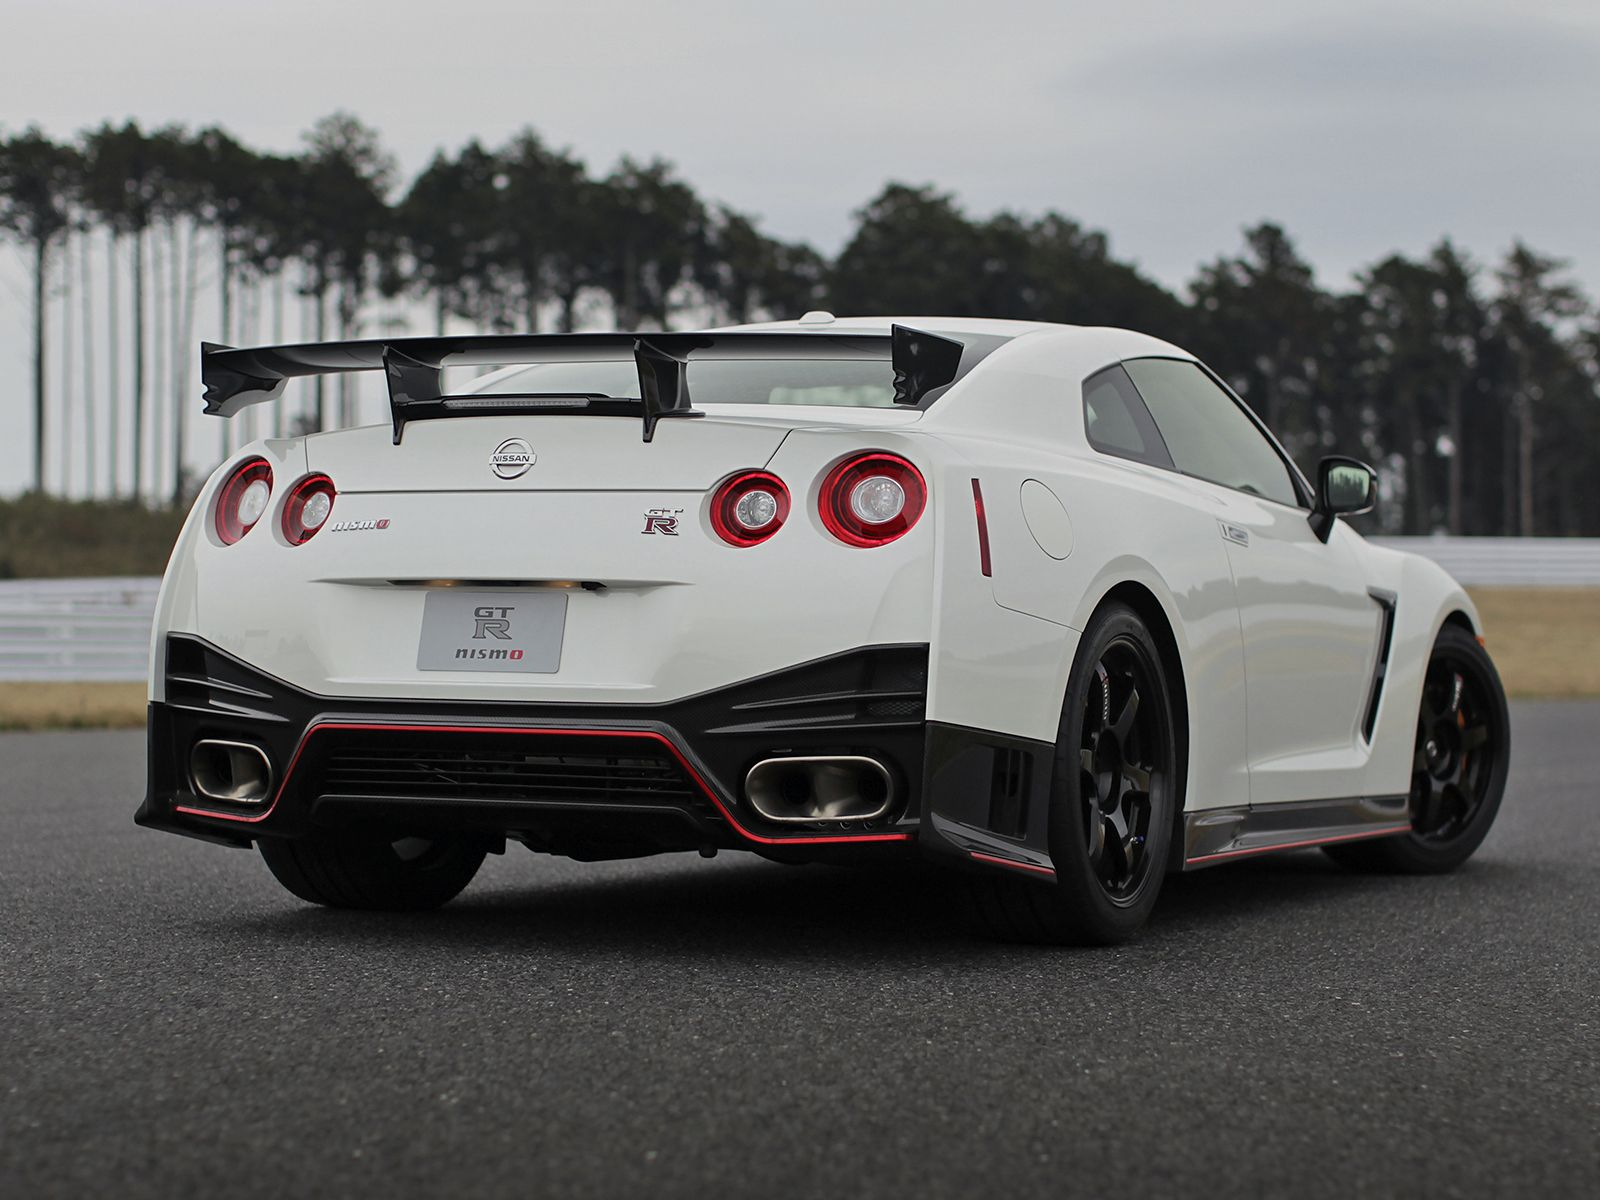 2014 nismo nissan skyline gt r r35 2014nismonissanskylinegtr japan cars pinterest nissan. Black Bedroom Furniture Sets. Home Design Ideas